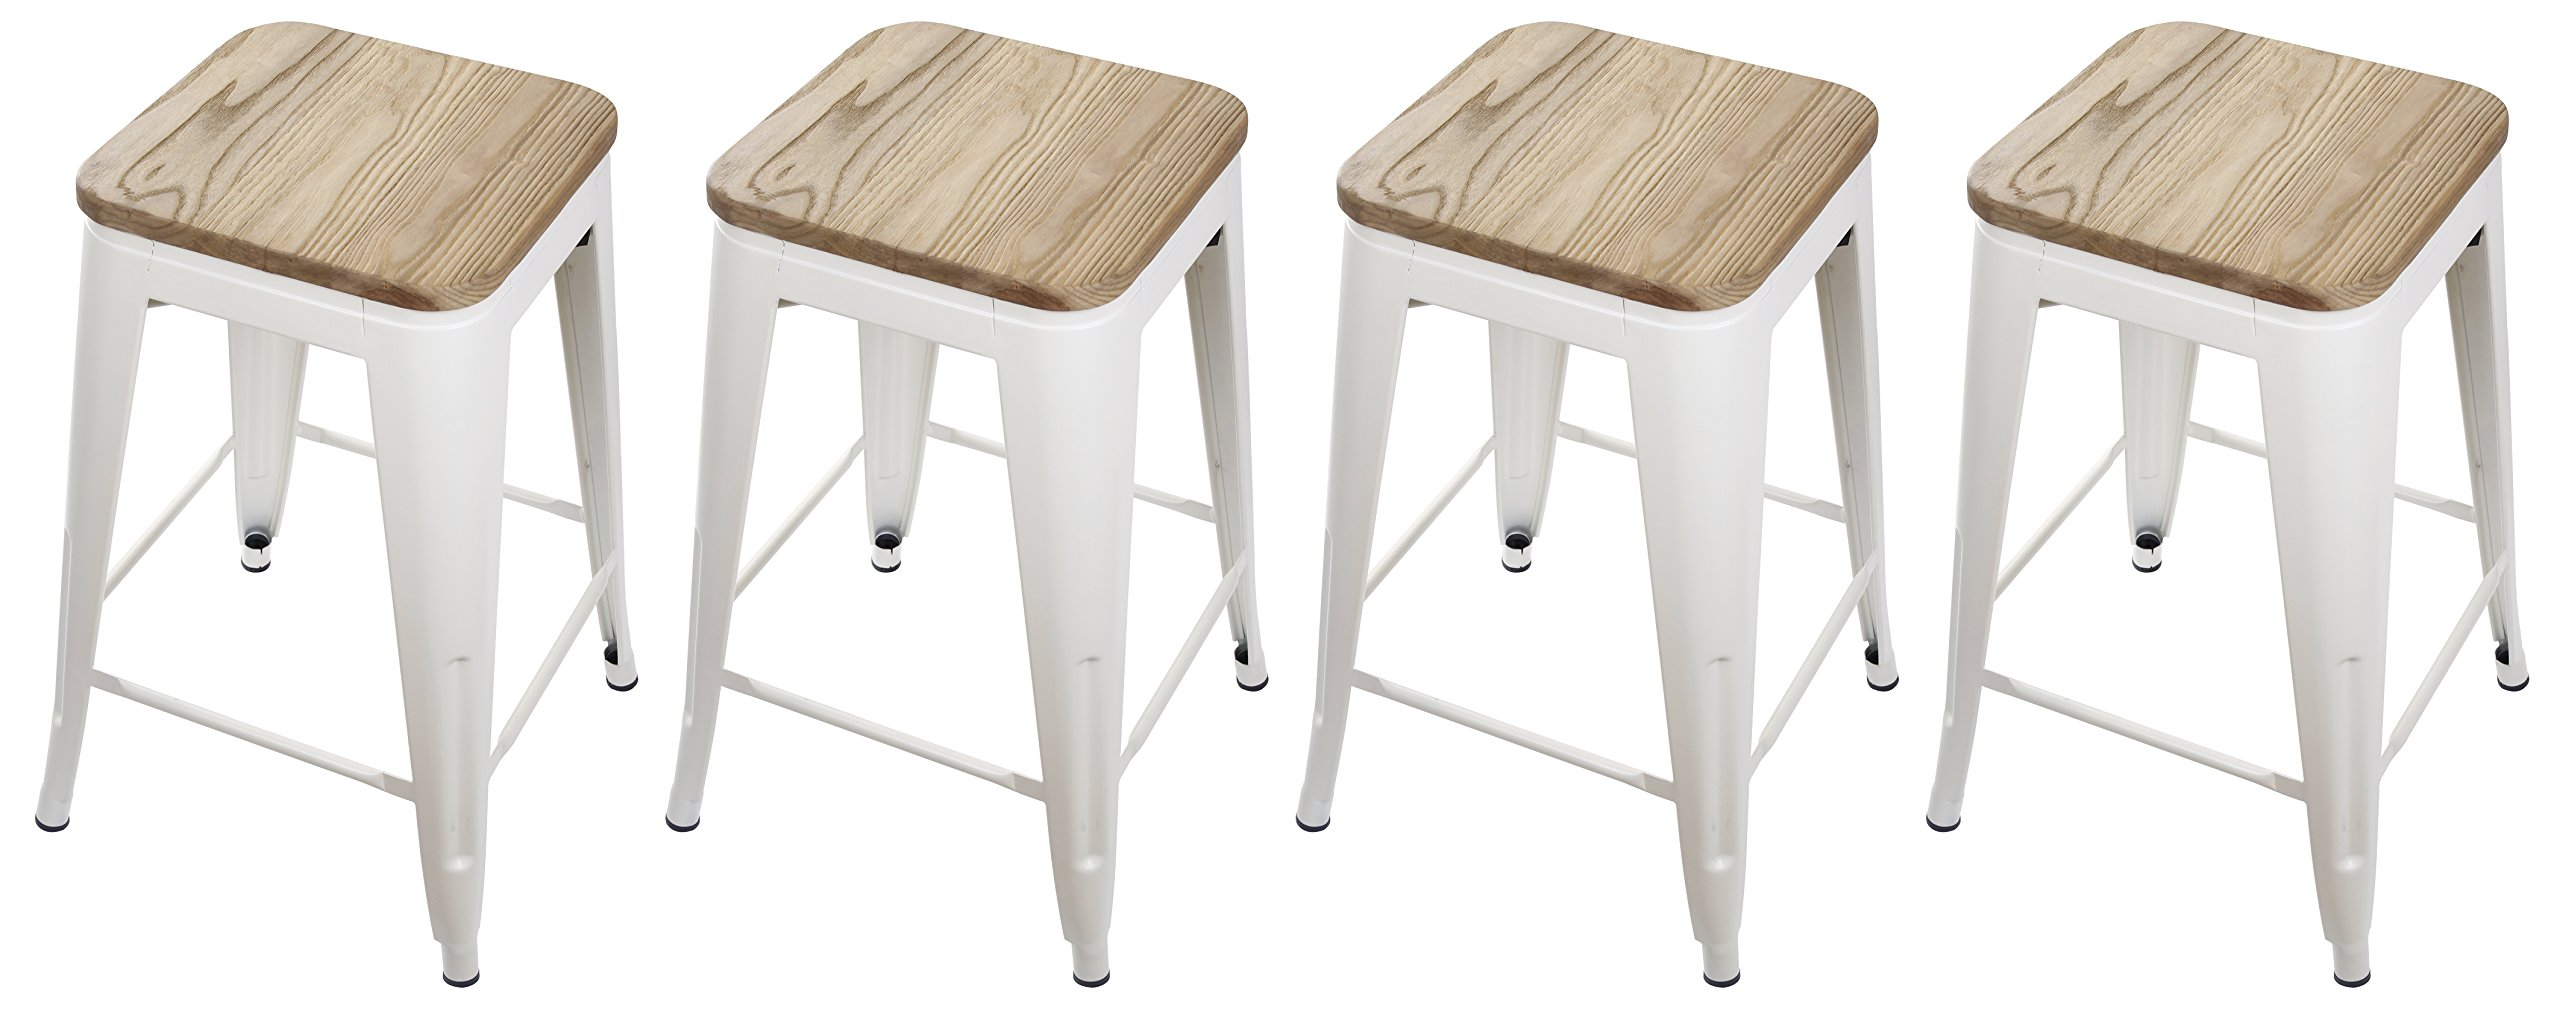 GIA Cream White 24'' Metal Stool with Wooden Seat(Set of 4) - Counter Height Square Backless - Tolix Style - Weight Capacity of 300+ Pounds - Ready to use - Extra Durable and Stackable